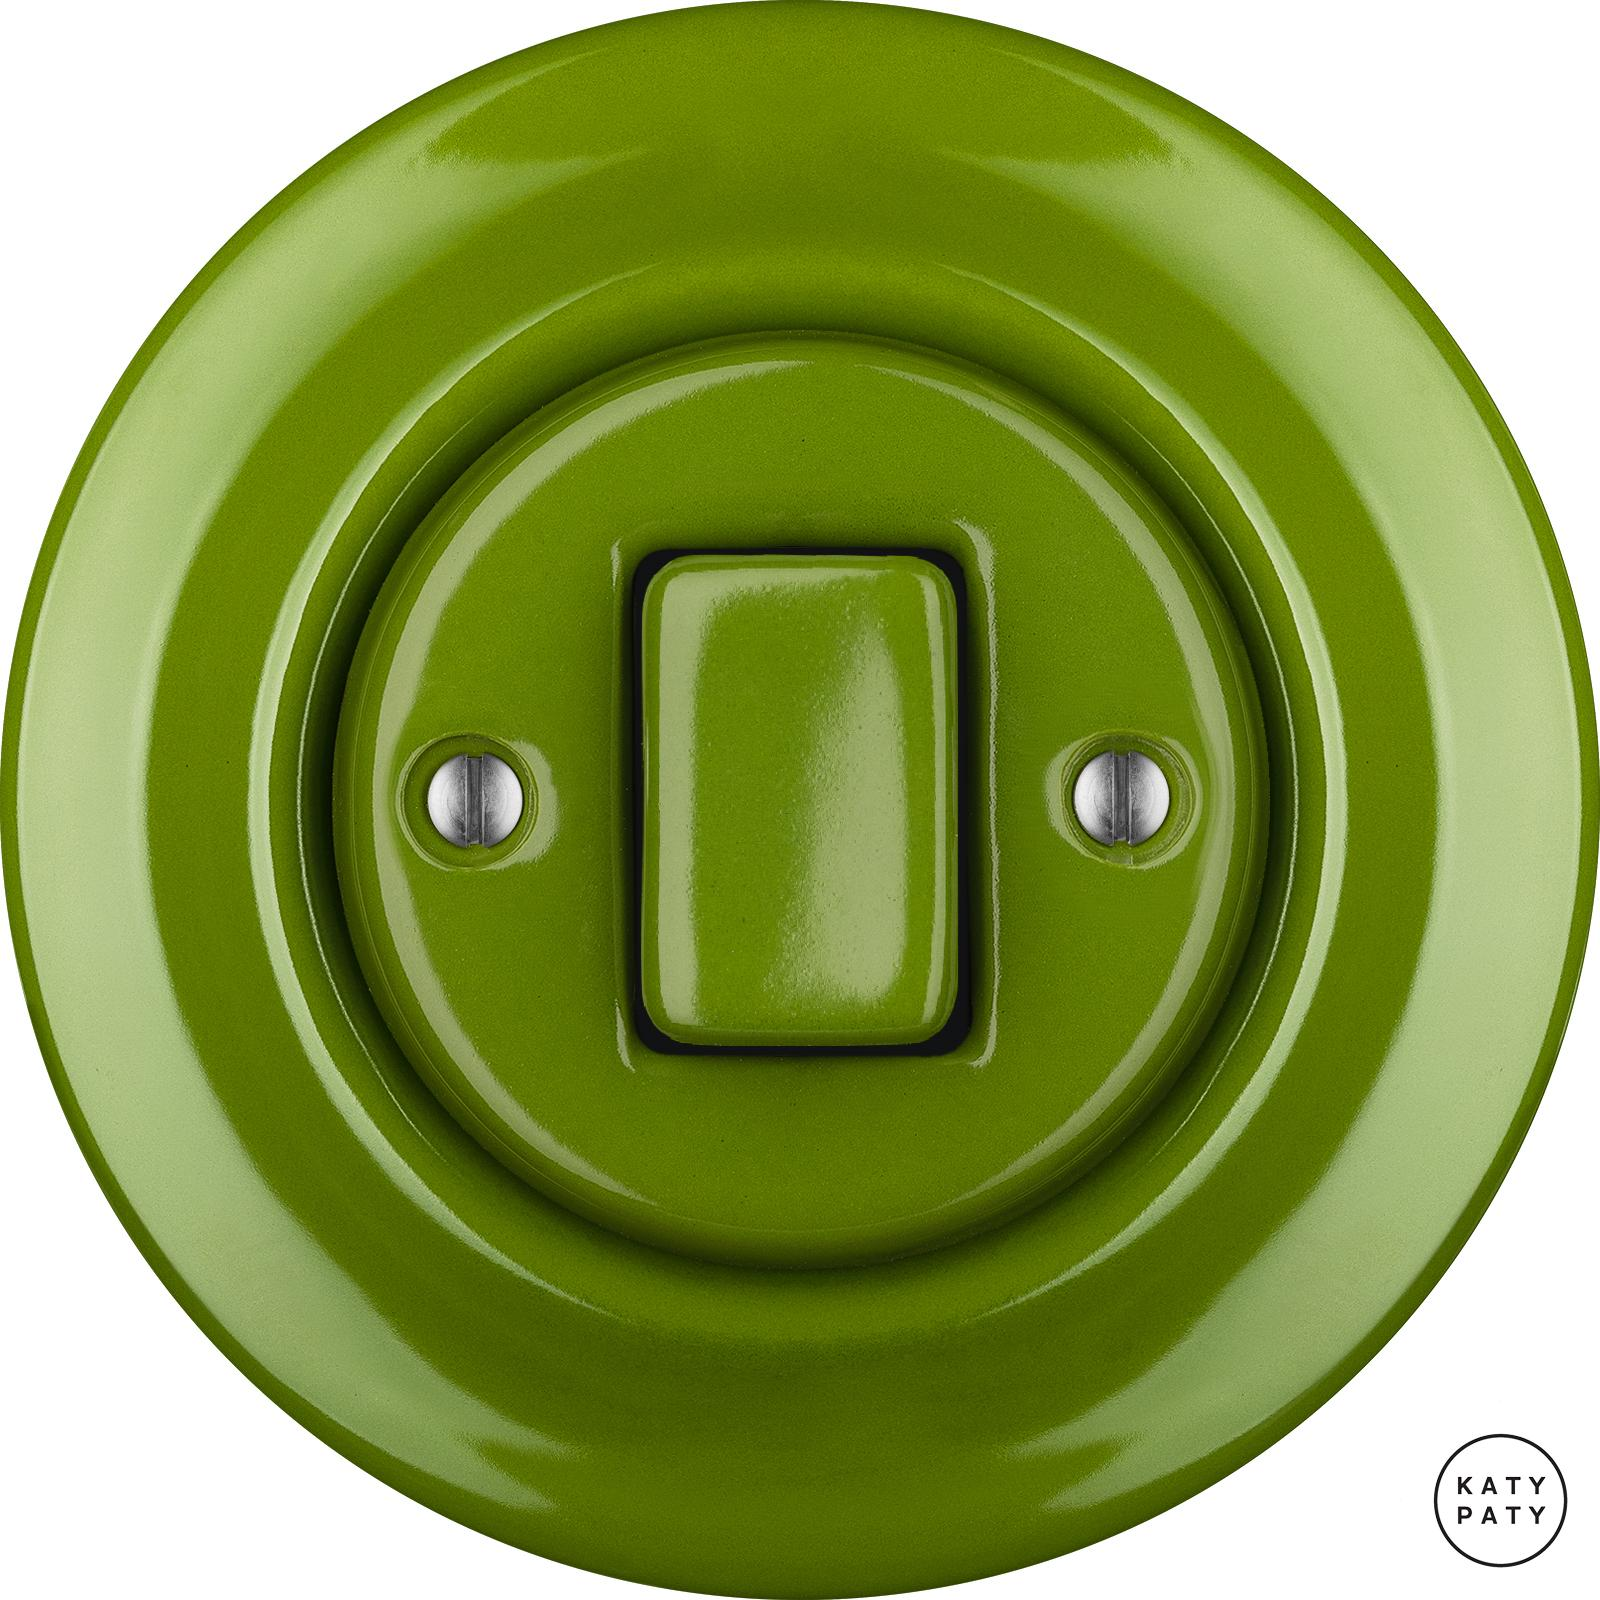 Porcelain switches - a single key - FAT ()  - NITOR CHLORA | Katy Paty